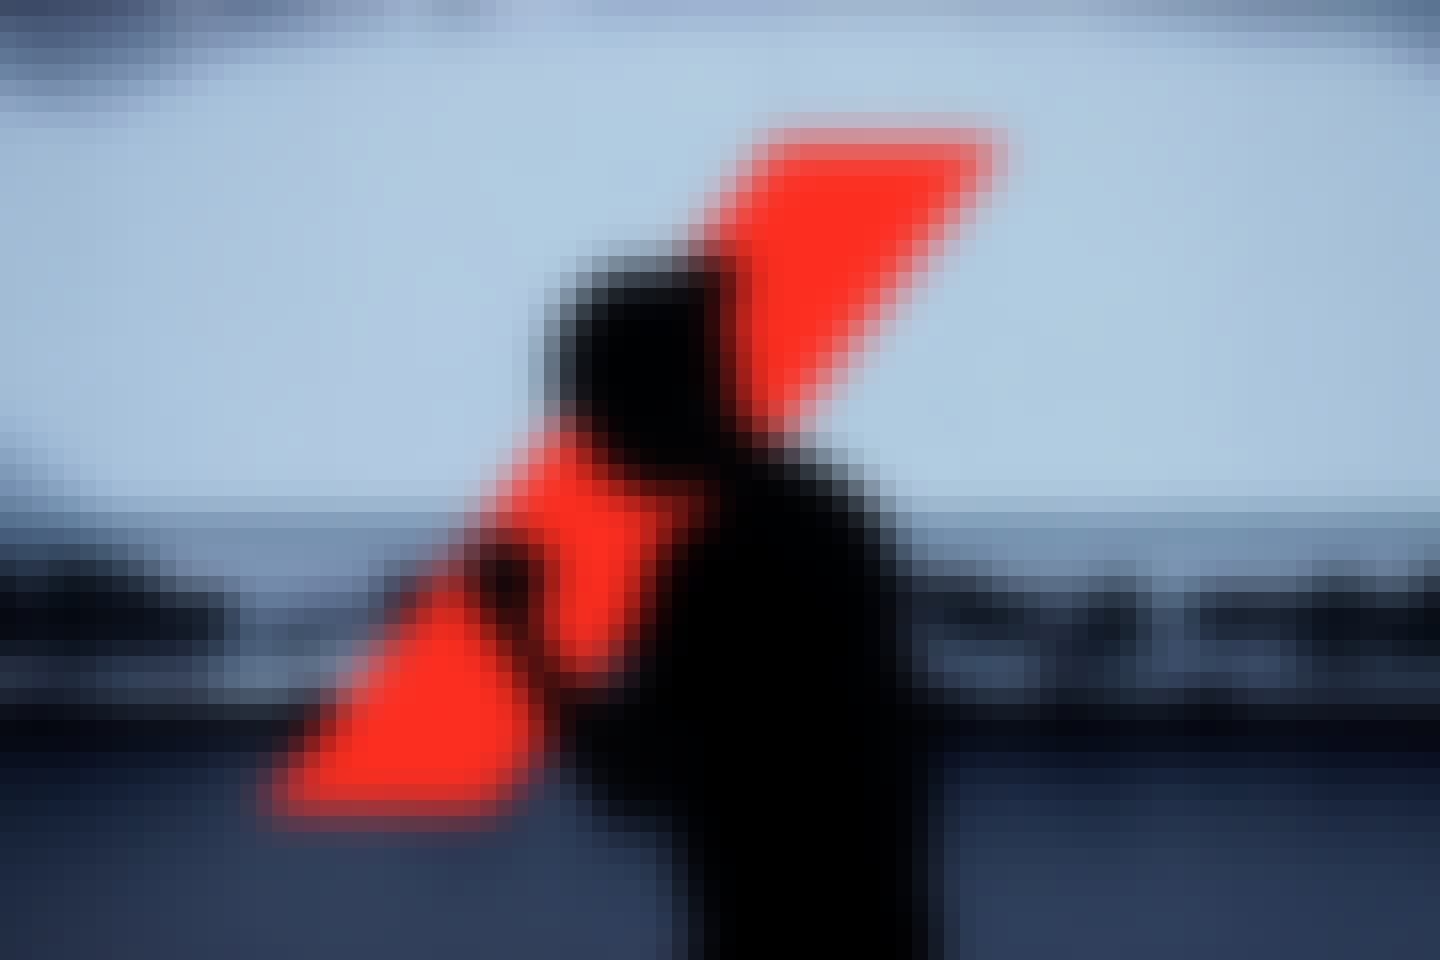 Silhouette of a women in front of the Axa red bar